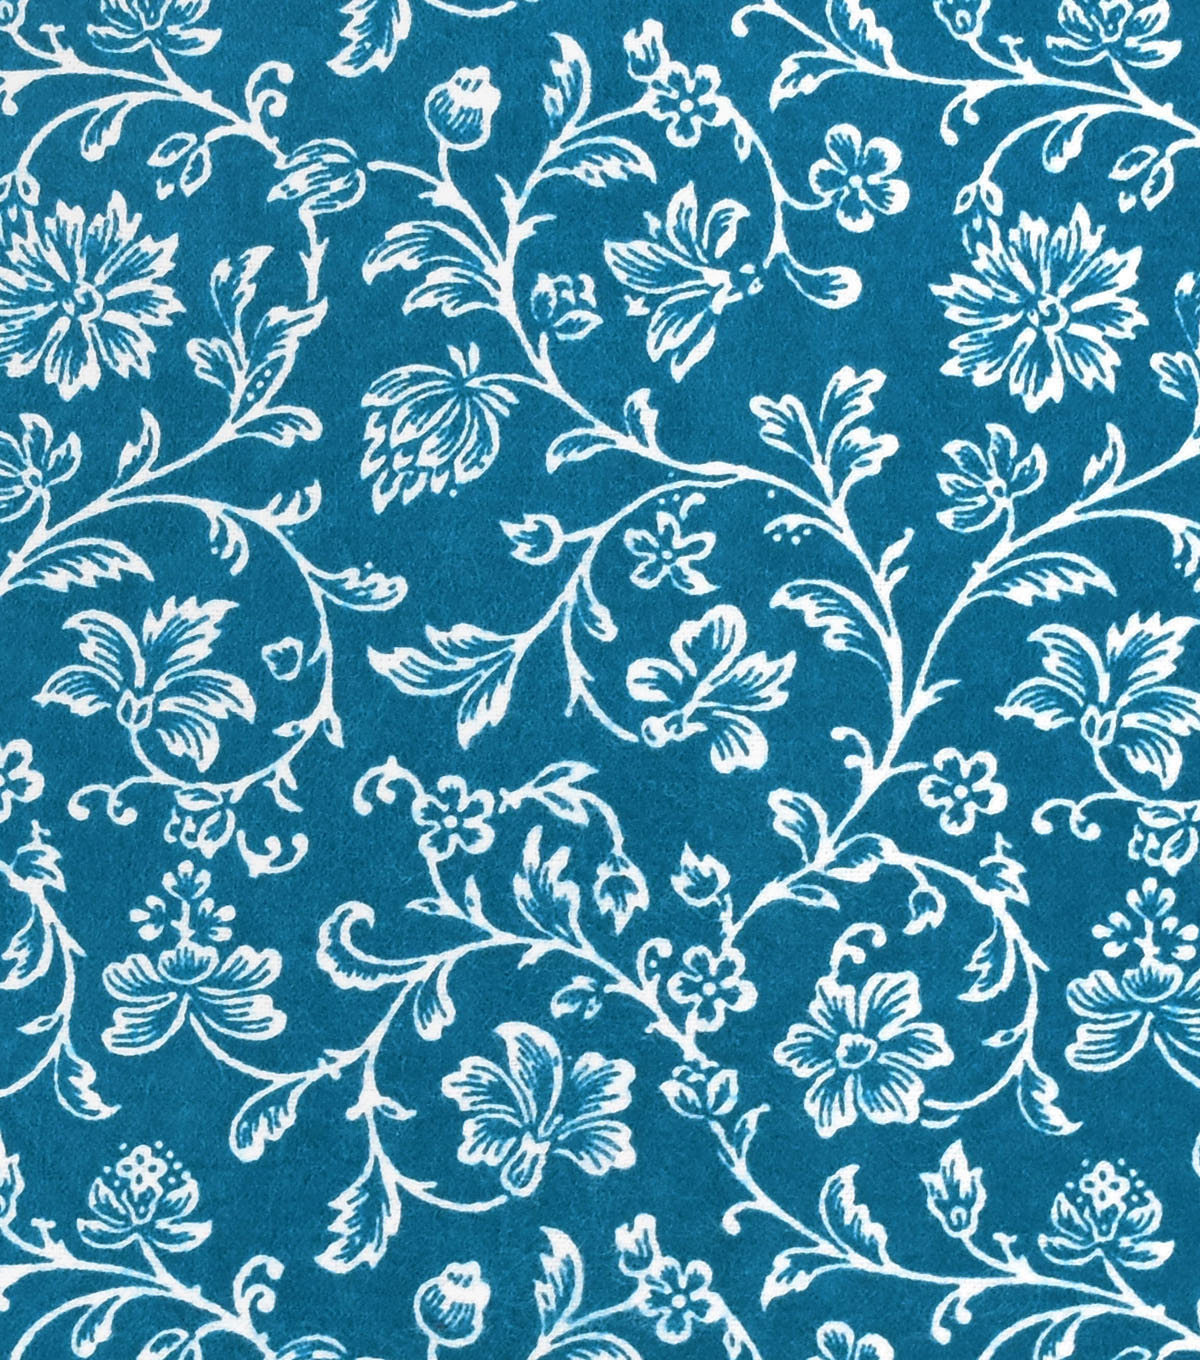 Snuggle Flannel Fabric -Aqua Floral Vines